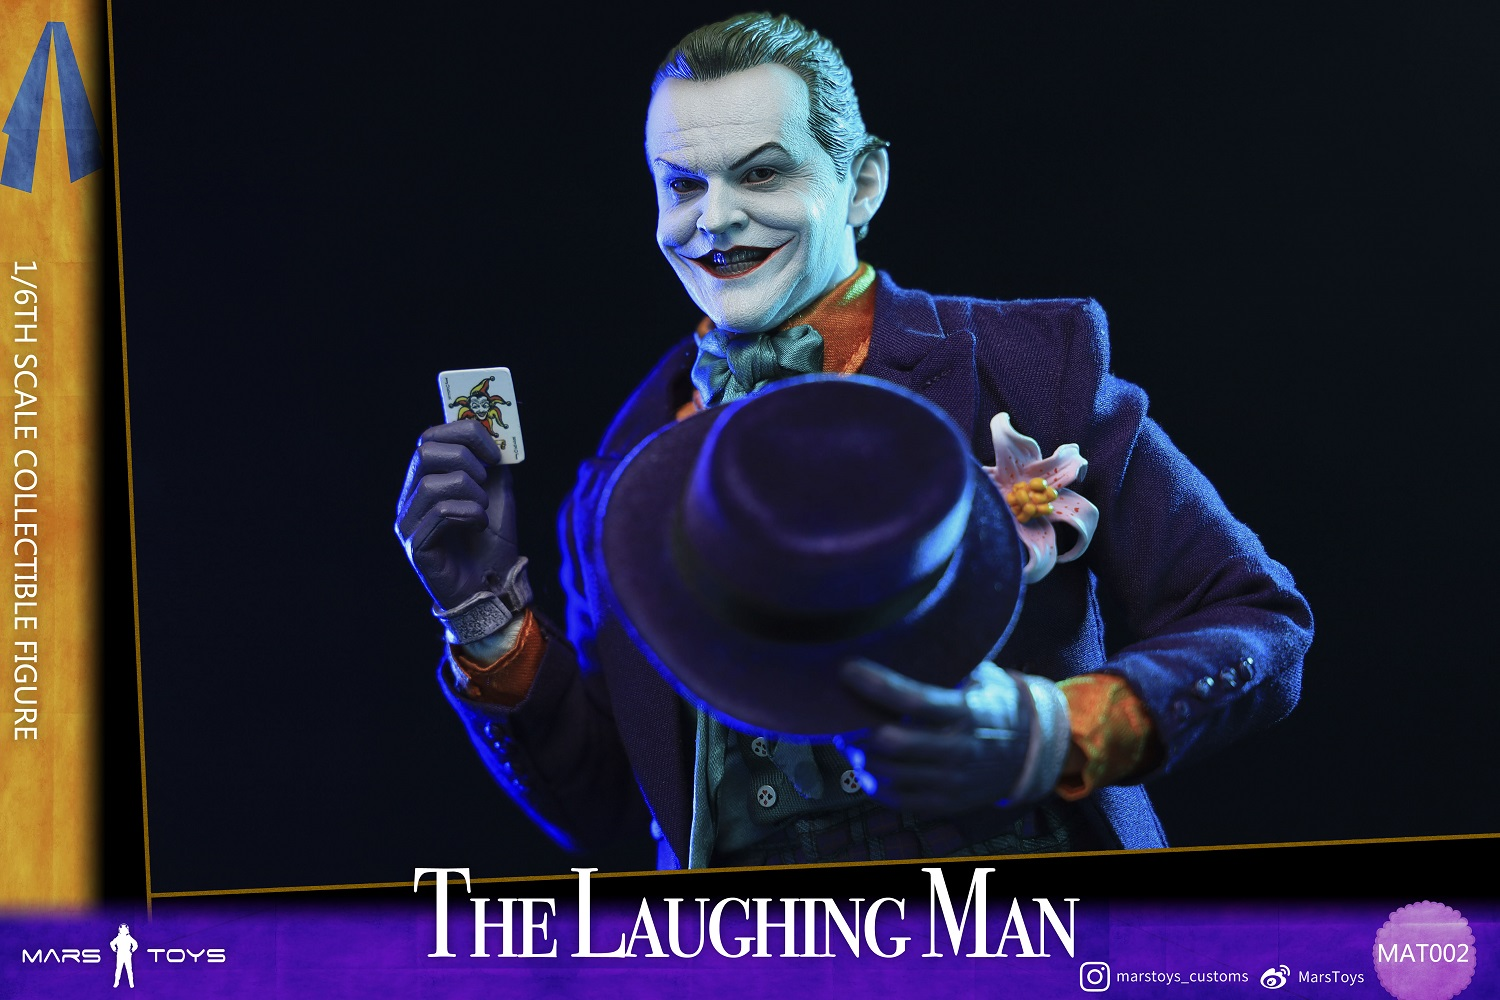 BATMAN 1989 JOKER THE LAUGHING MAN JACK NICHOLSON 1/6 SCALE FIGURE 4